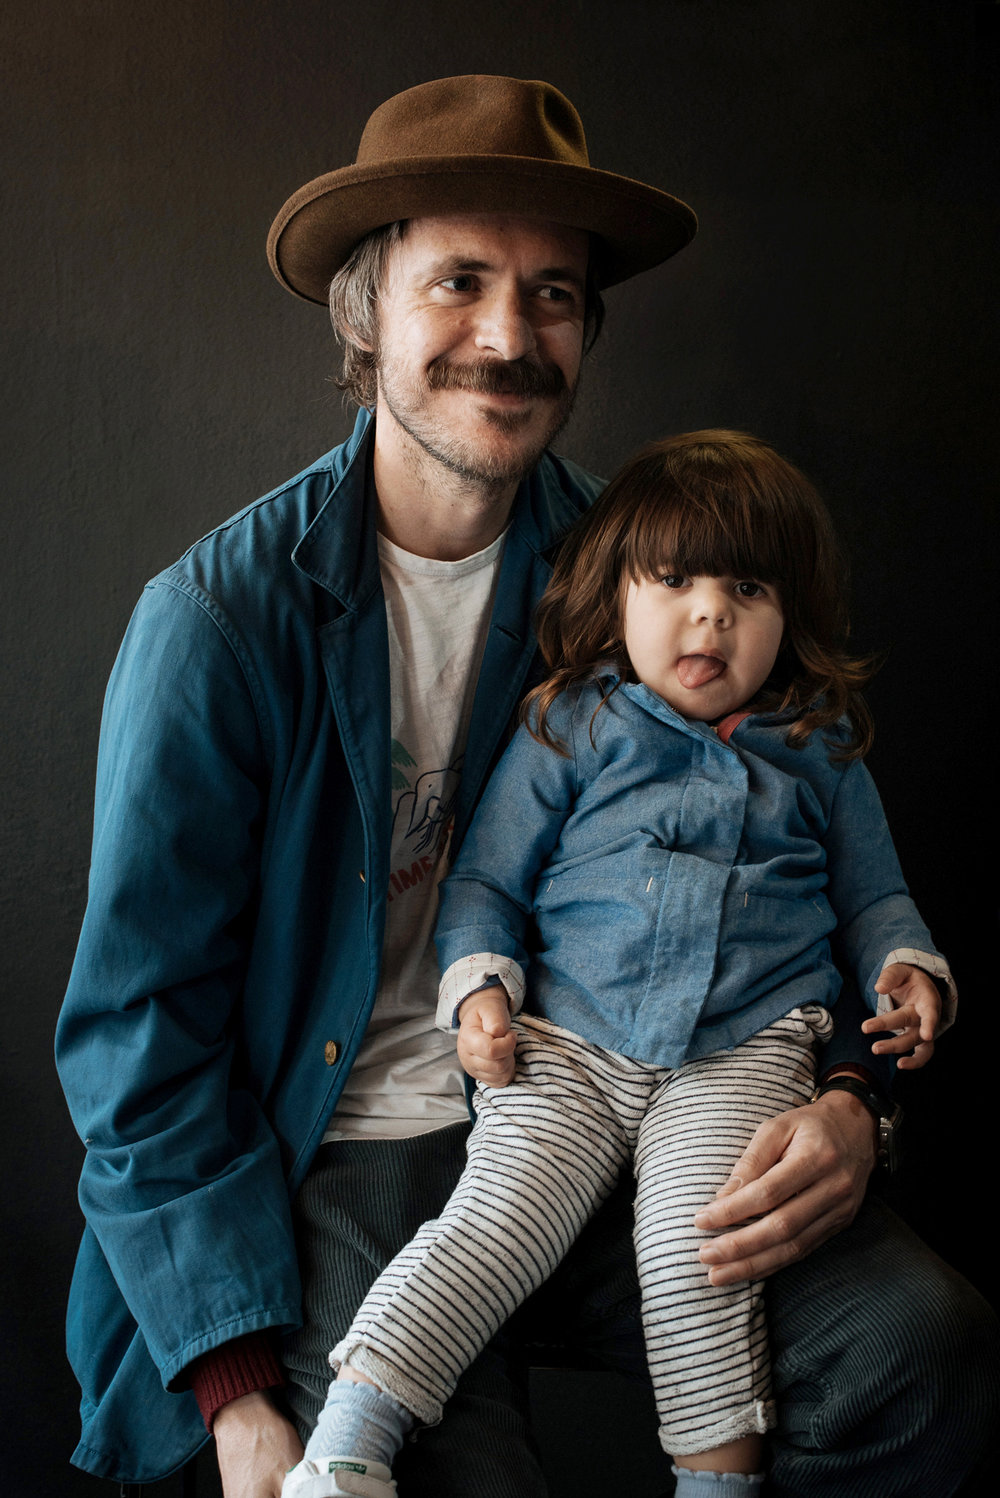 Adam Walmsley and his daughter Ren, captured at The MITT Mrkt. in the lead up towards Father's Day here in Australia.